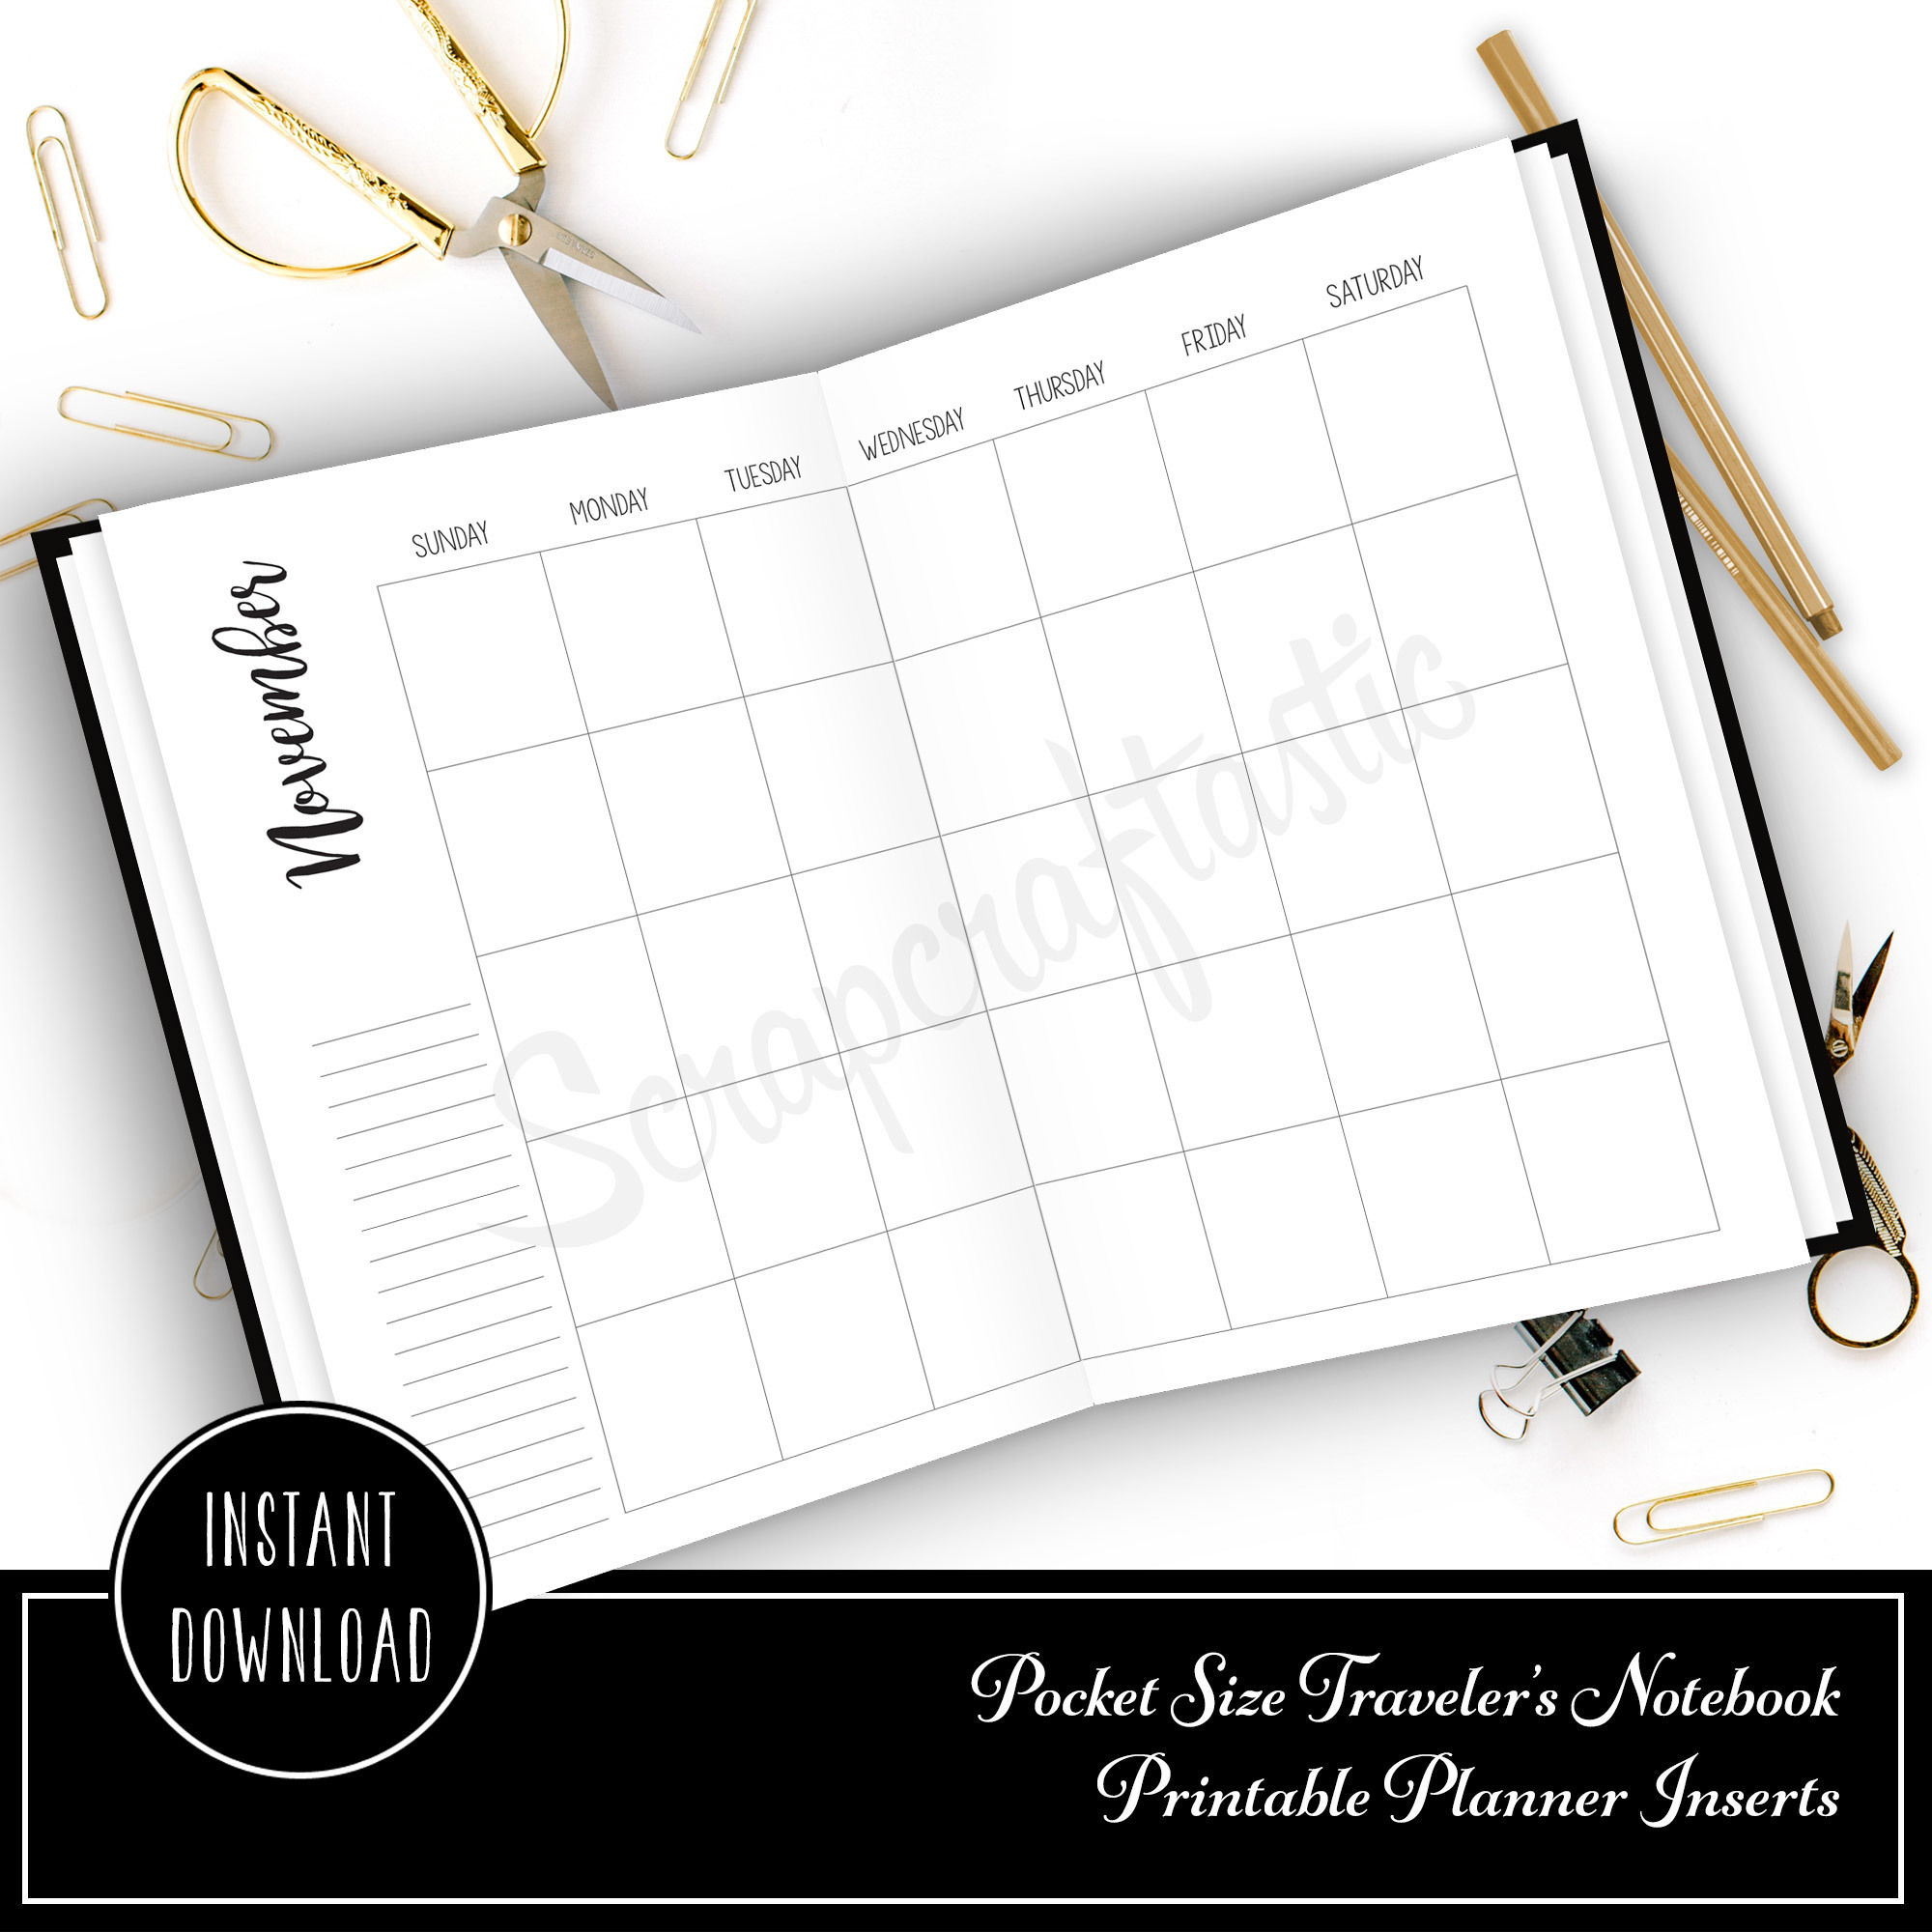 One Year of Monthly Inserts (MO2P) - Pocket Size Traveler's Notebook Printable Inserts 00812